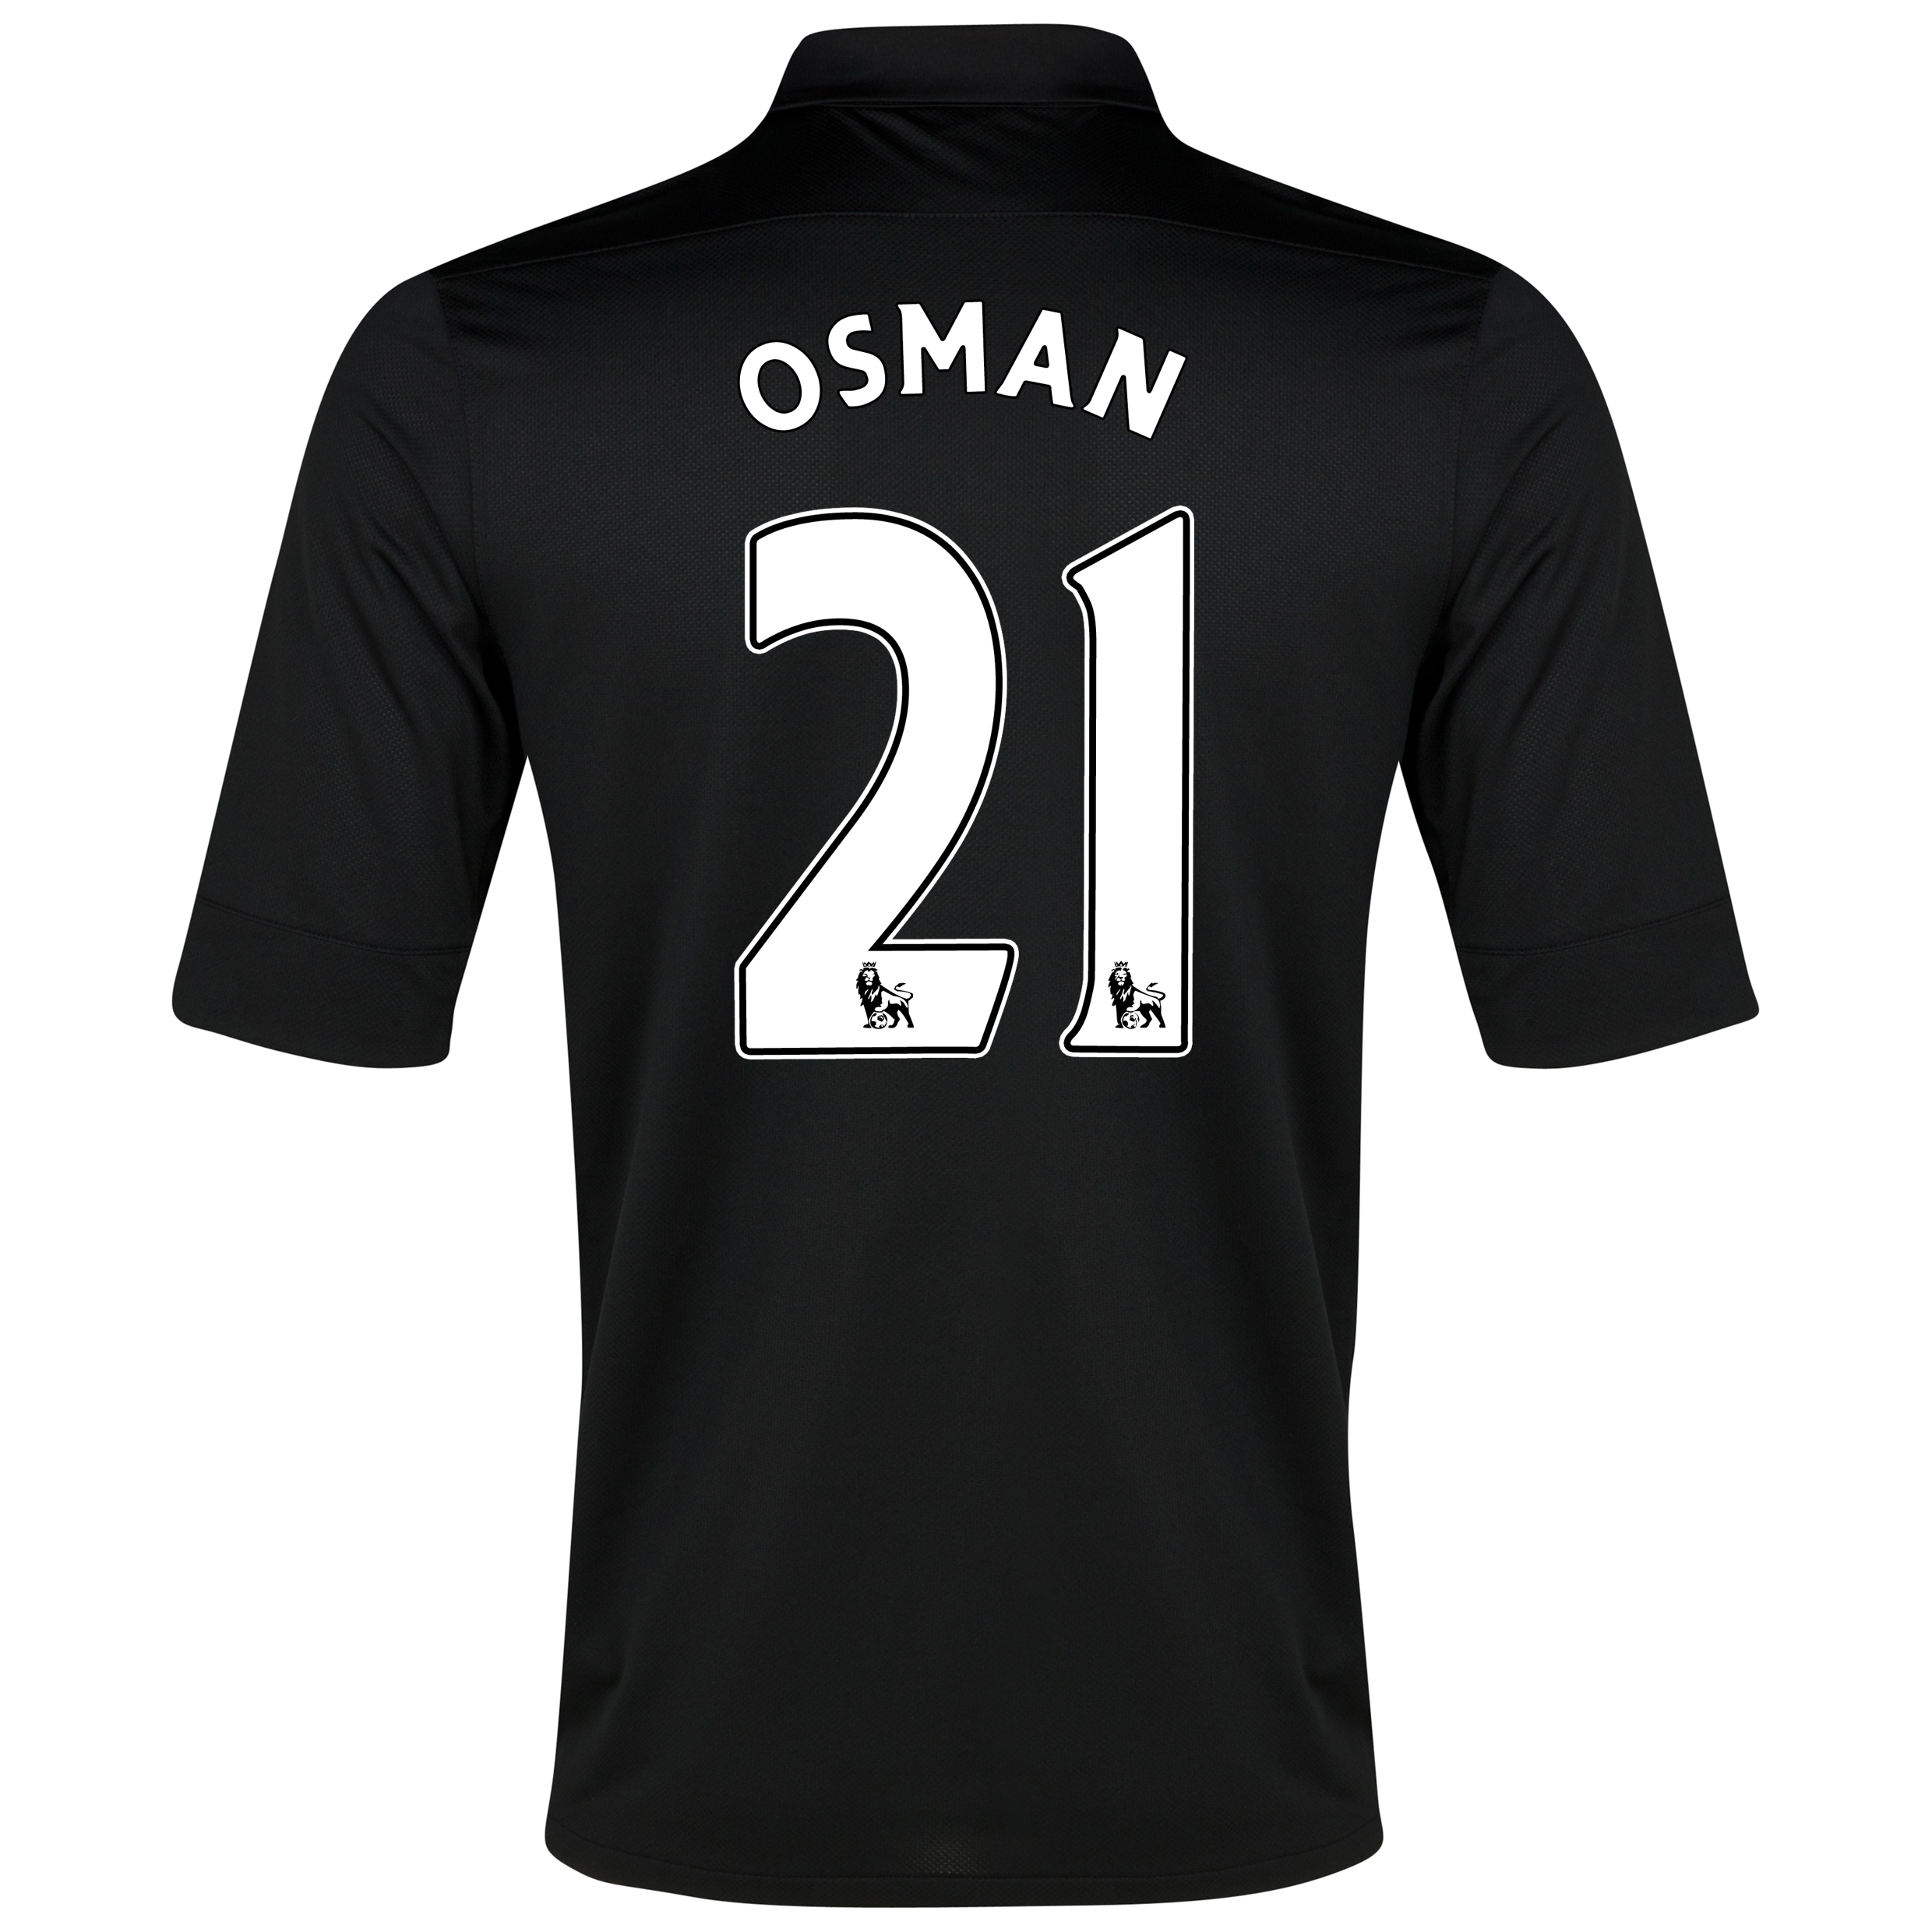 Everton Away Shirt 2012/13 with Osman 21 printing